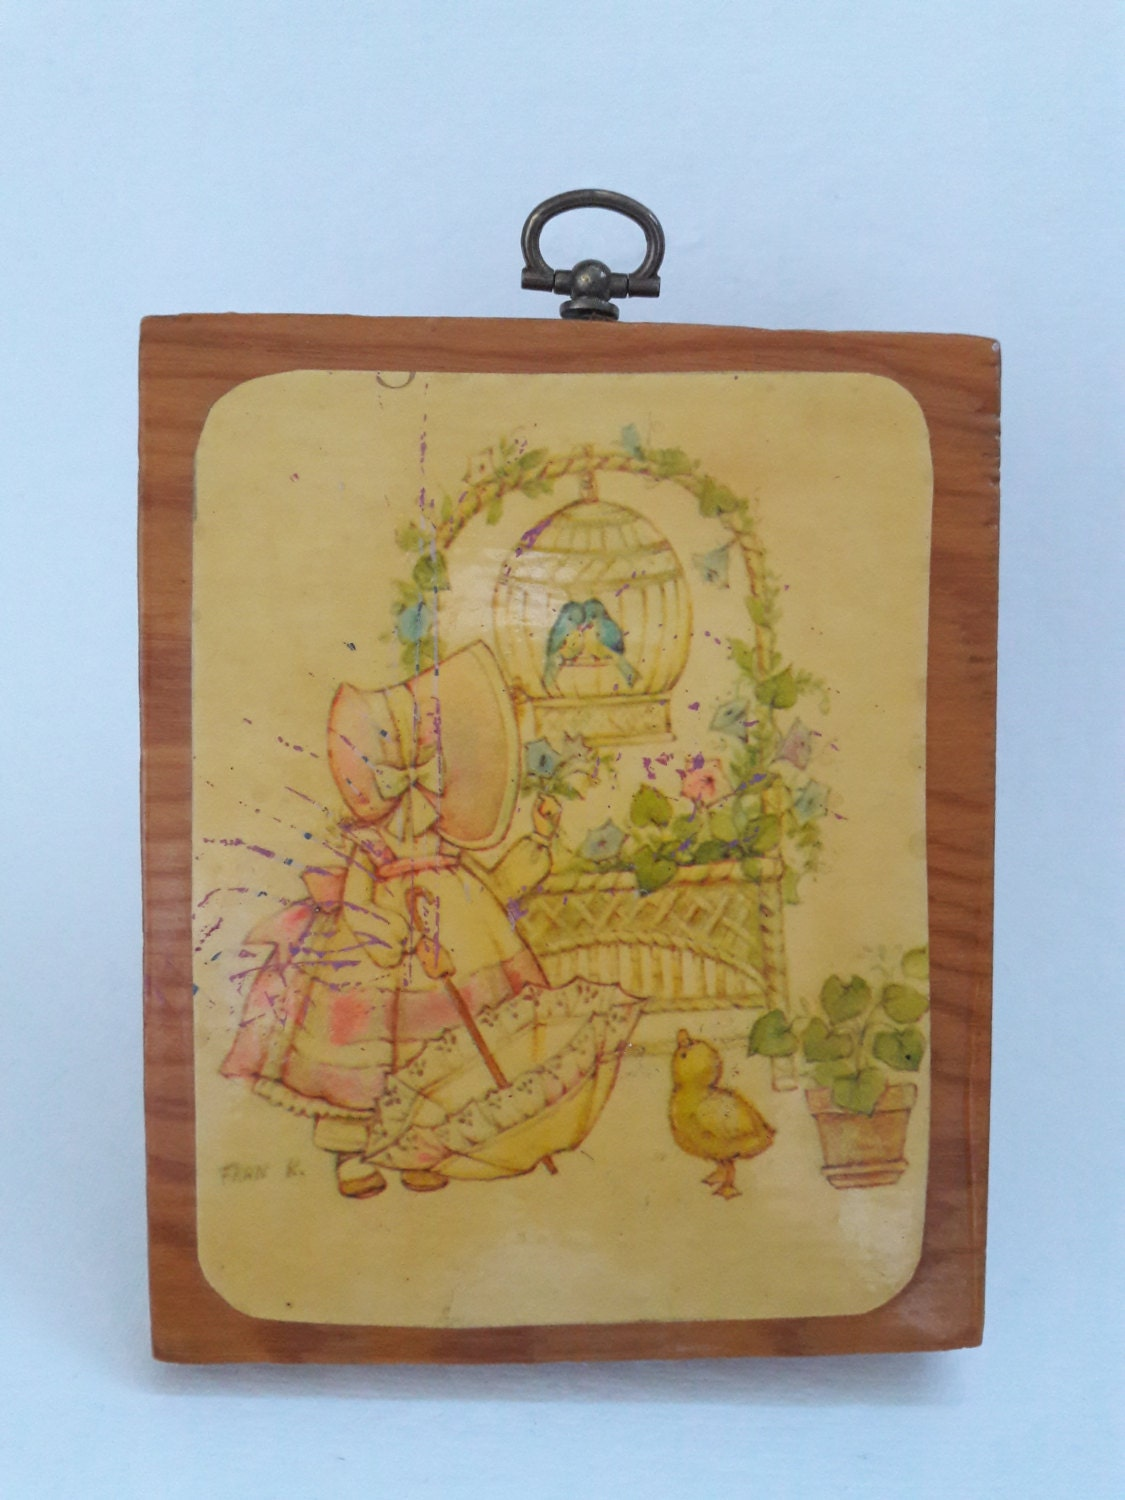 Vintage Fran K. Wooden Plaque Wall Decor